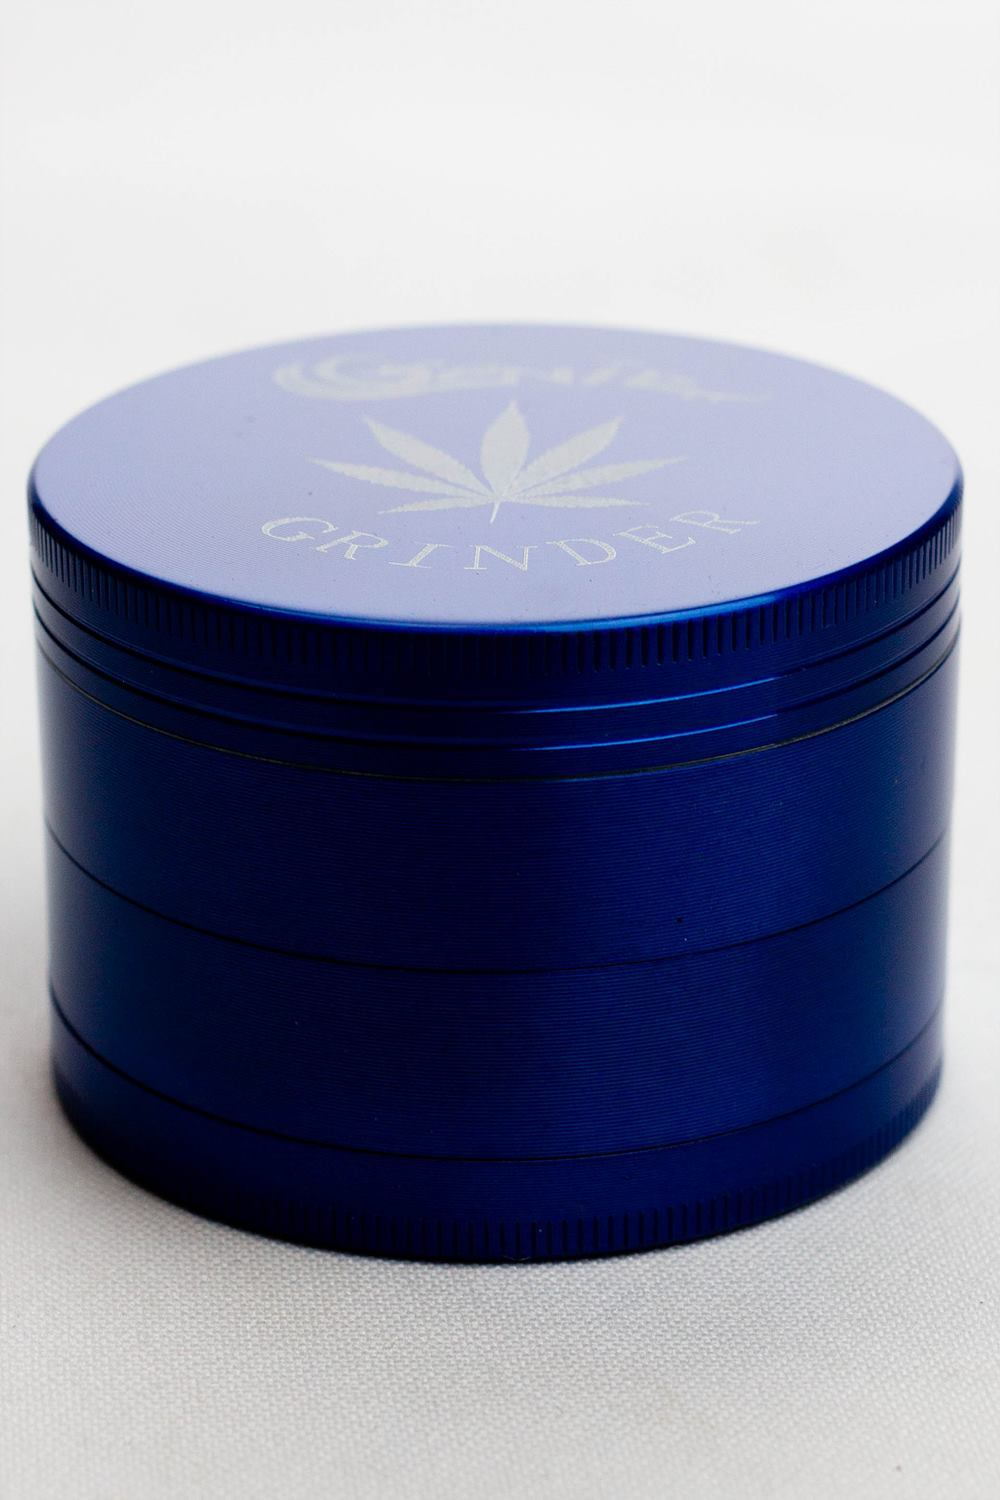 4 parts genie laser etched leaf metal herb grinder - One wholesale Canada